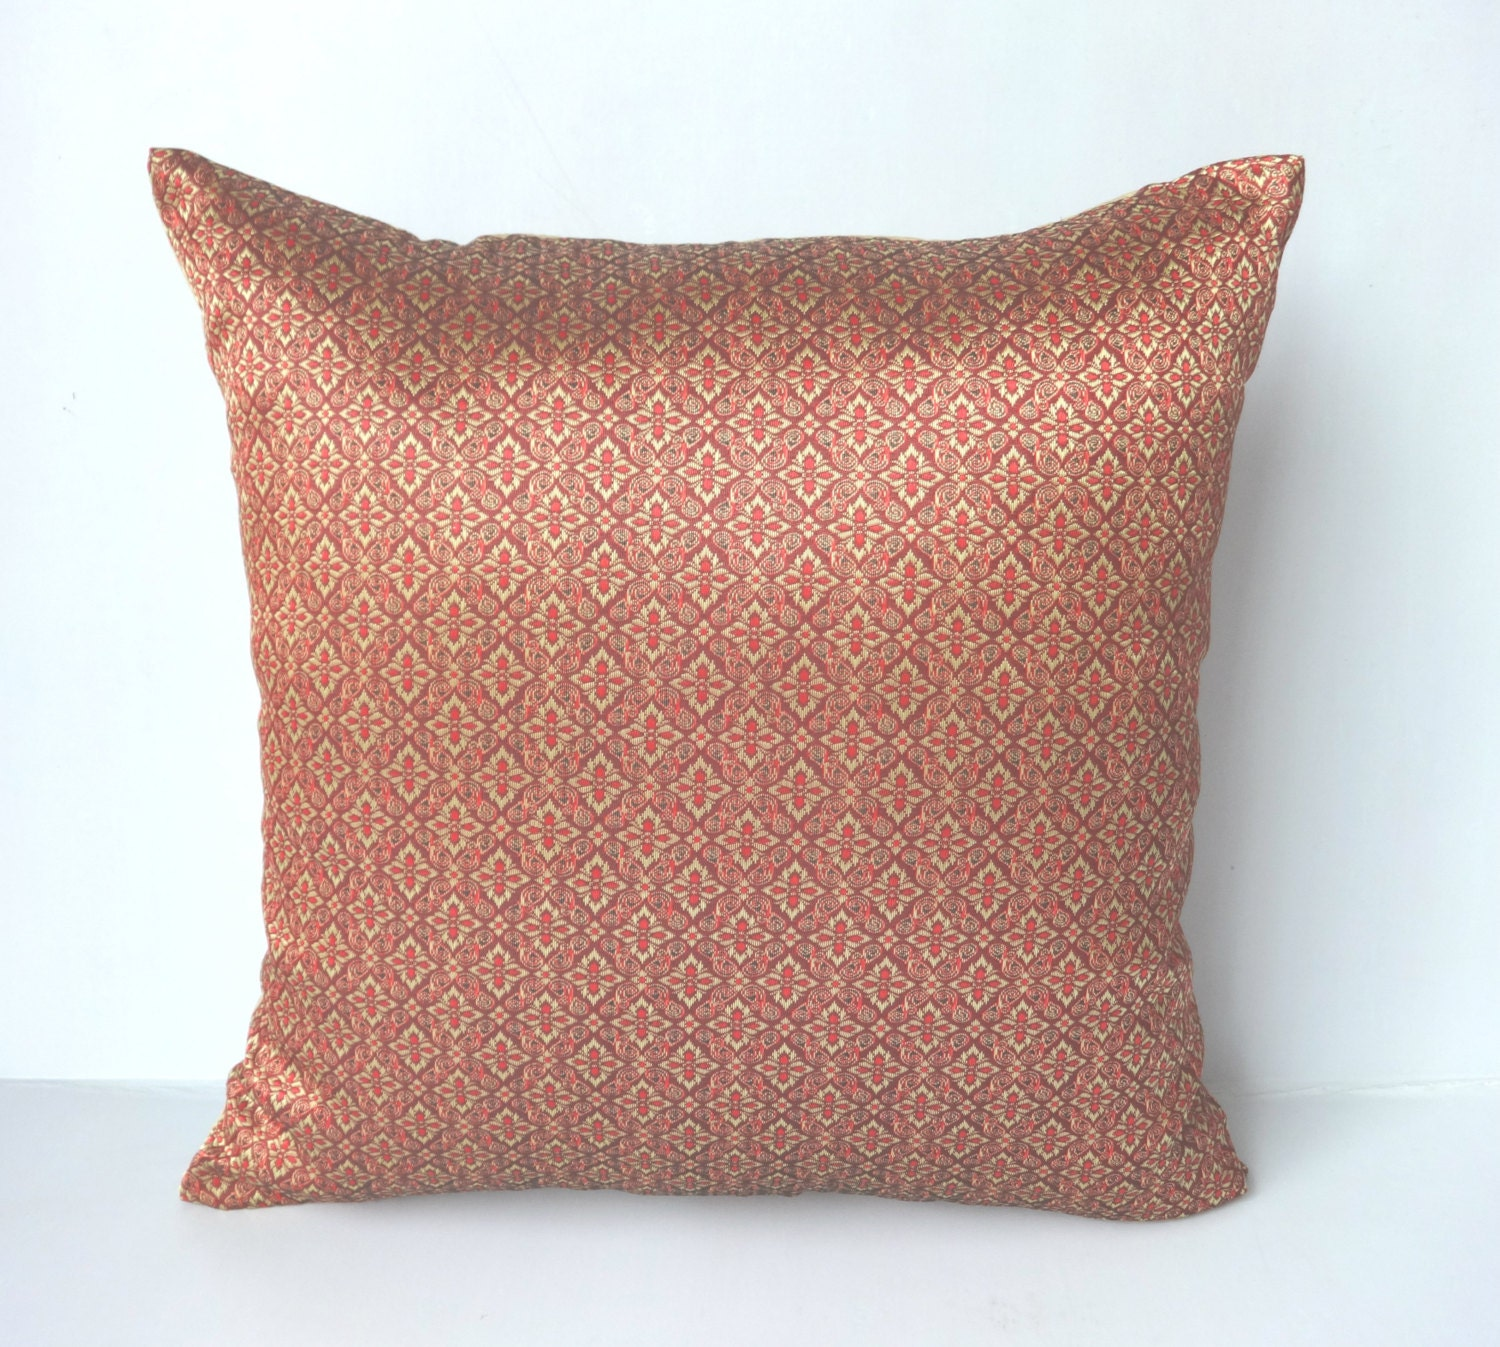 Throw Pillows Maroon : Maroon and gold Brocade Decorative Pillow Covers festive